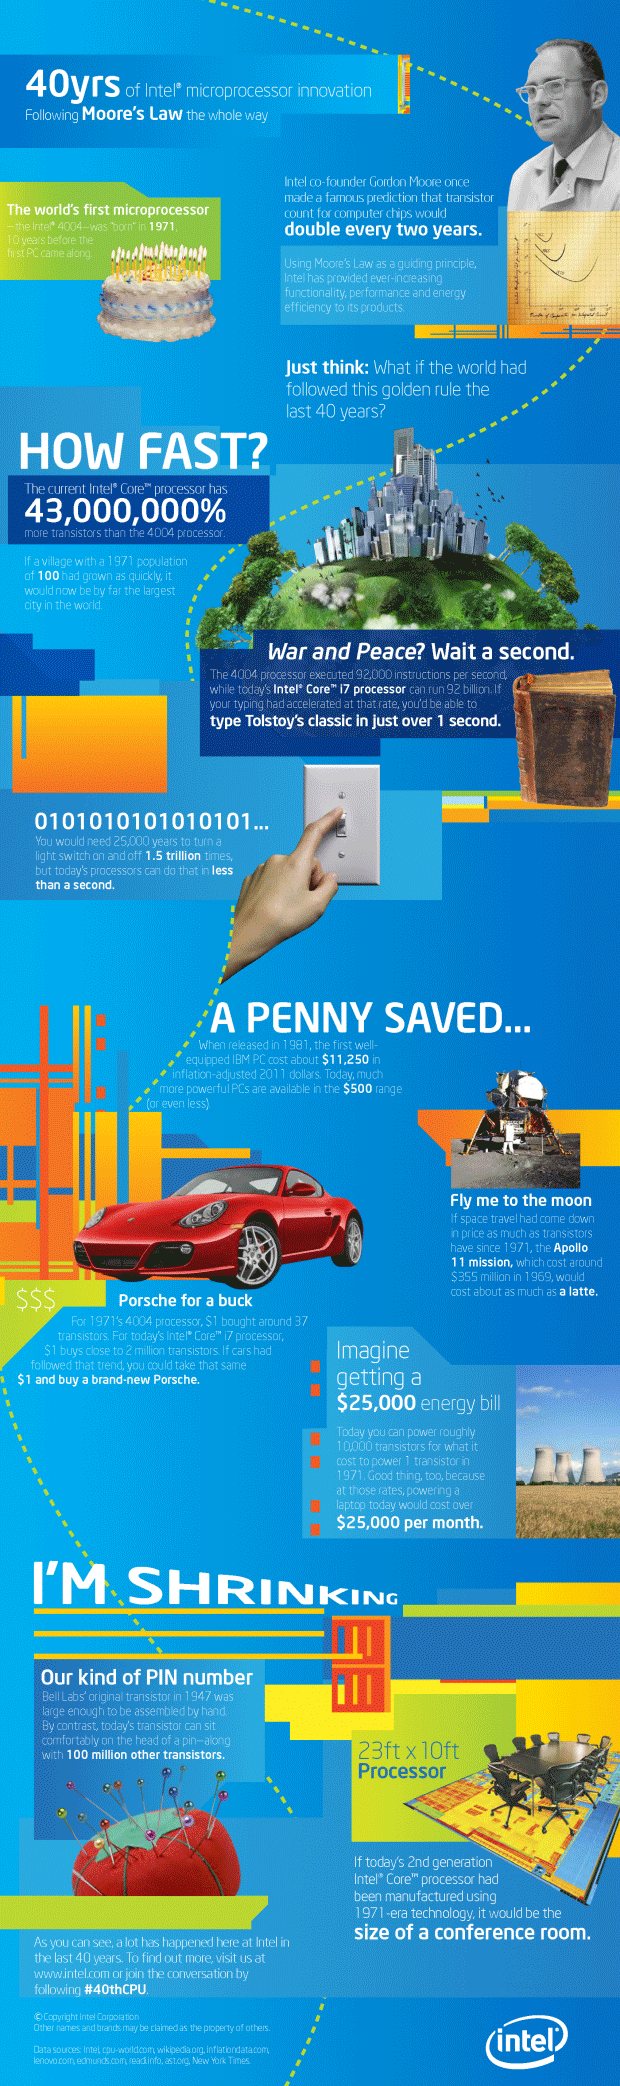 Infographic Intel viert digitale revolutie